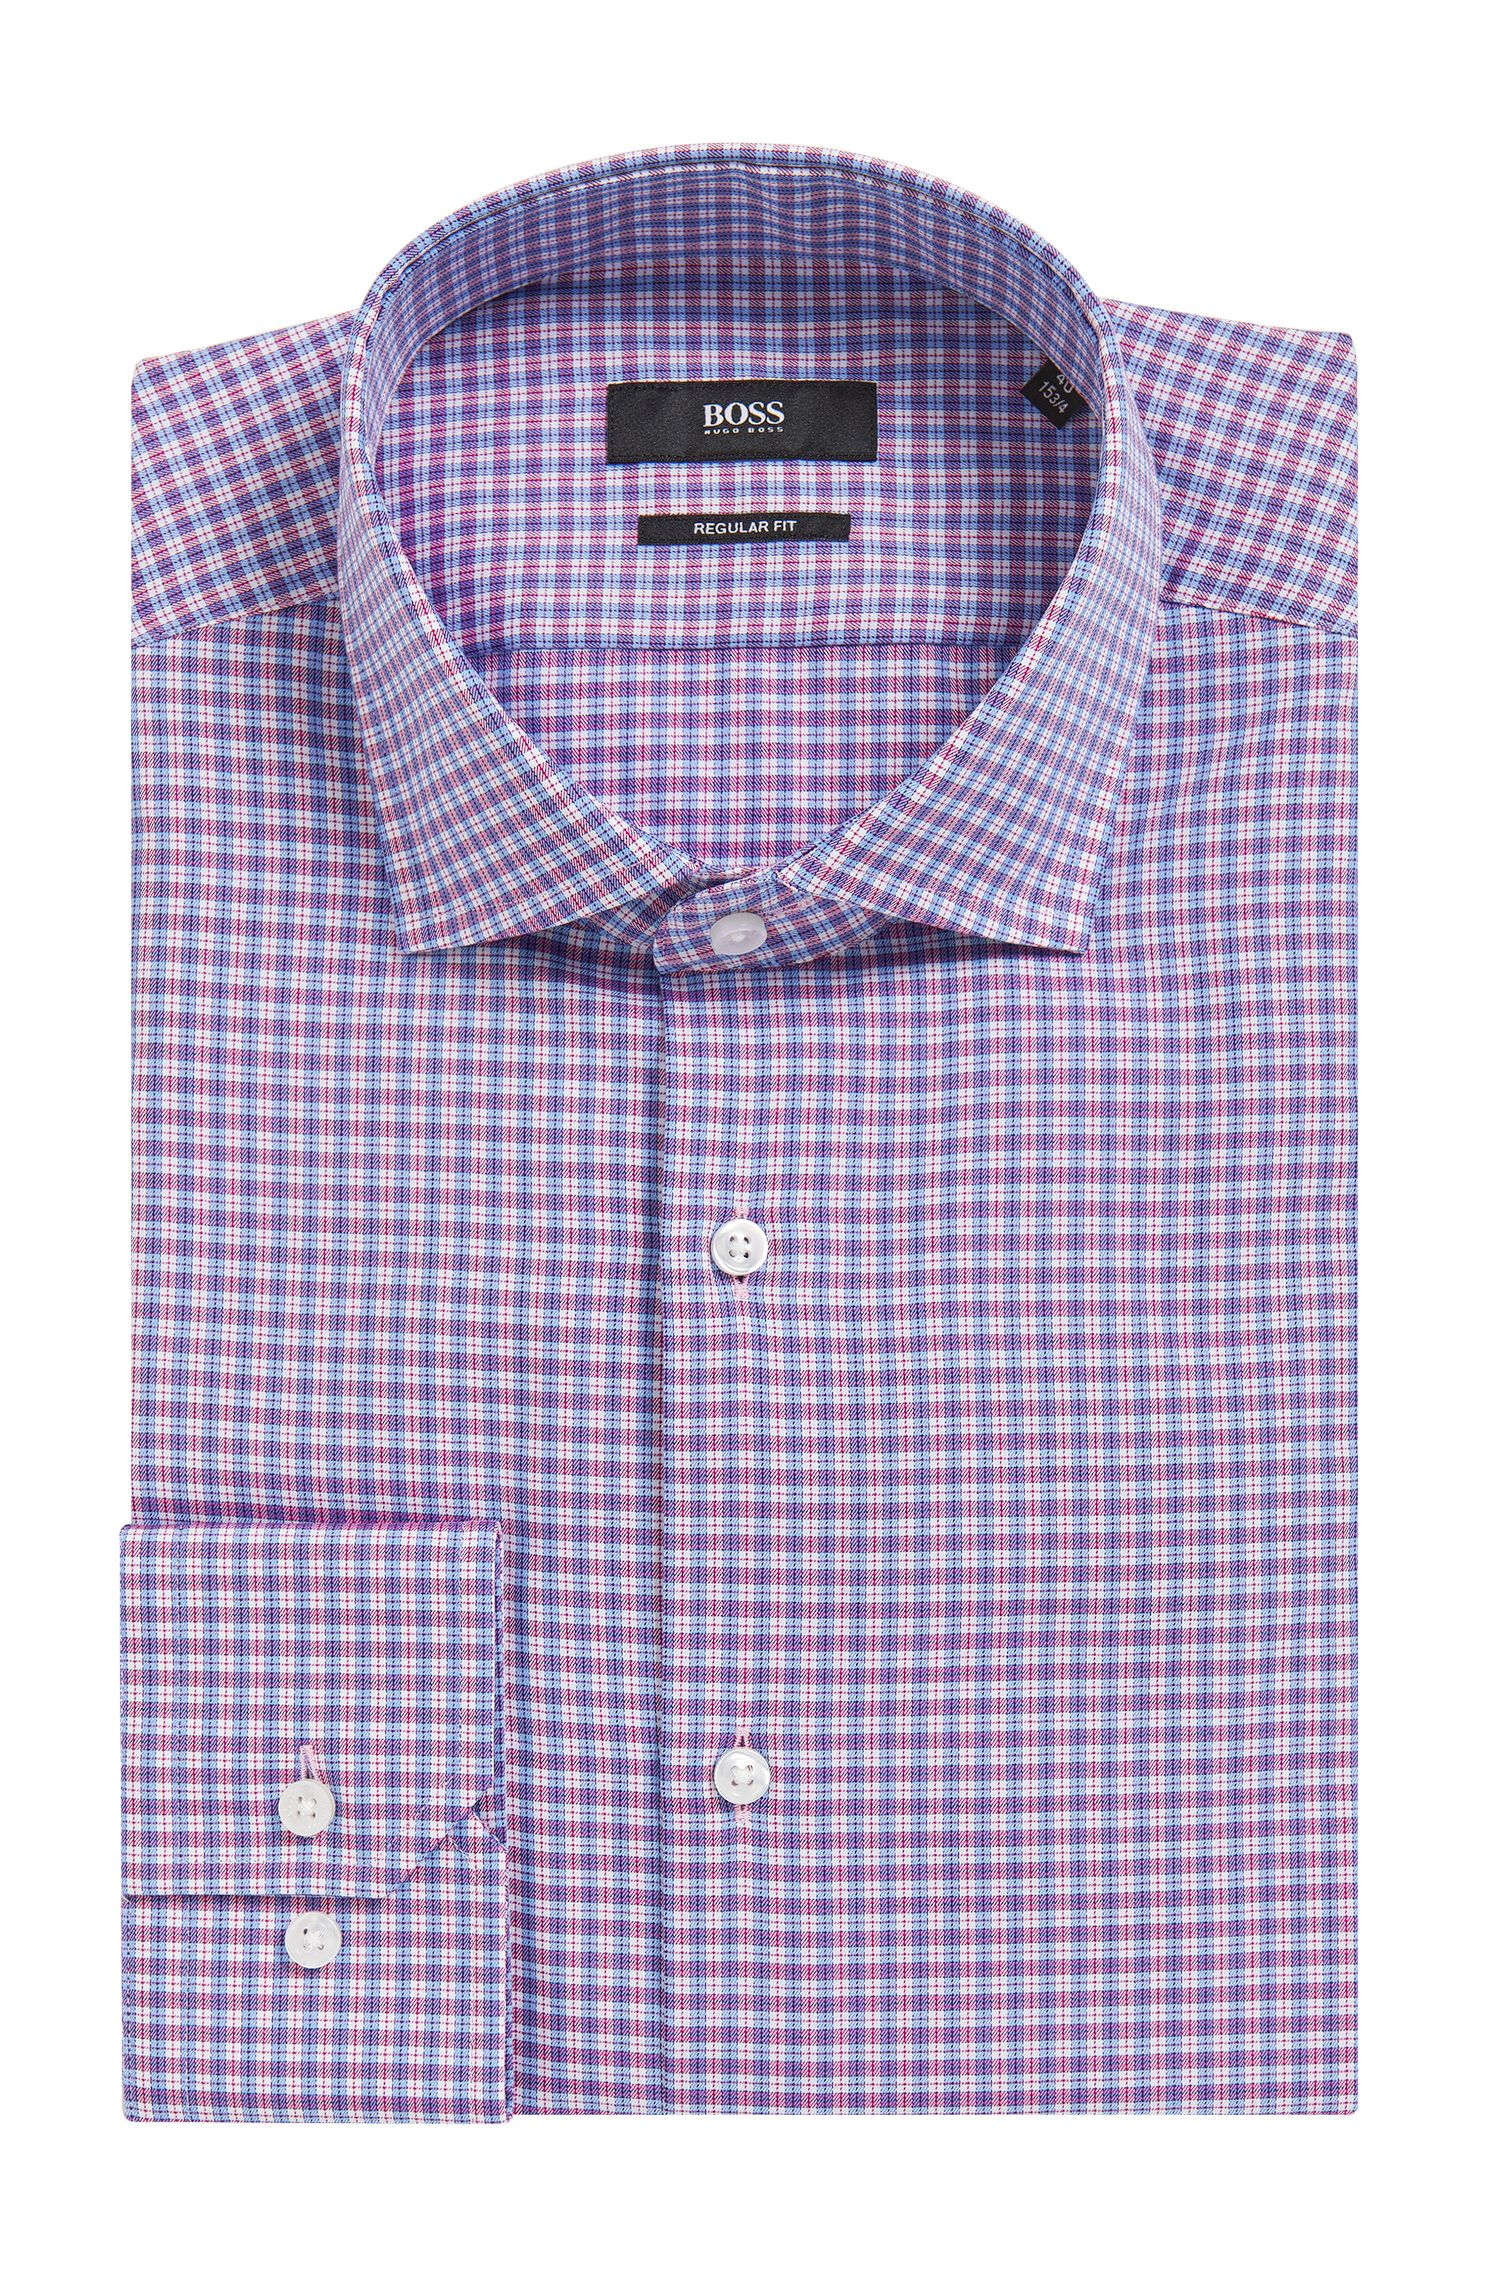 Plaid Cotton Dress Shirt, Regular Fit | Gordon, Dark pink